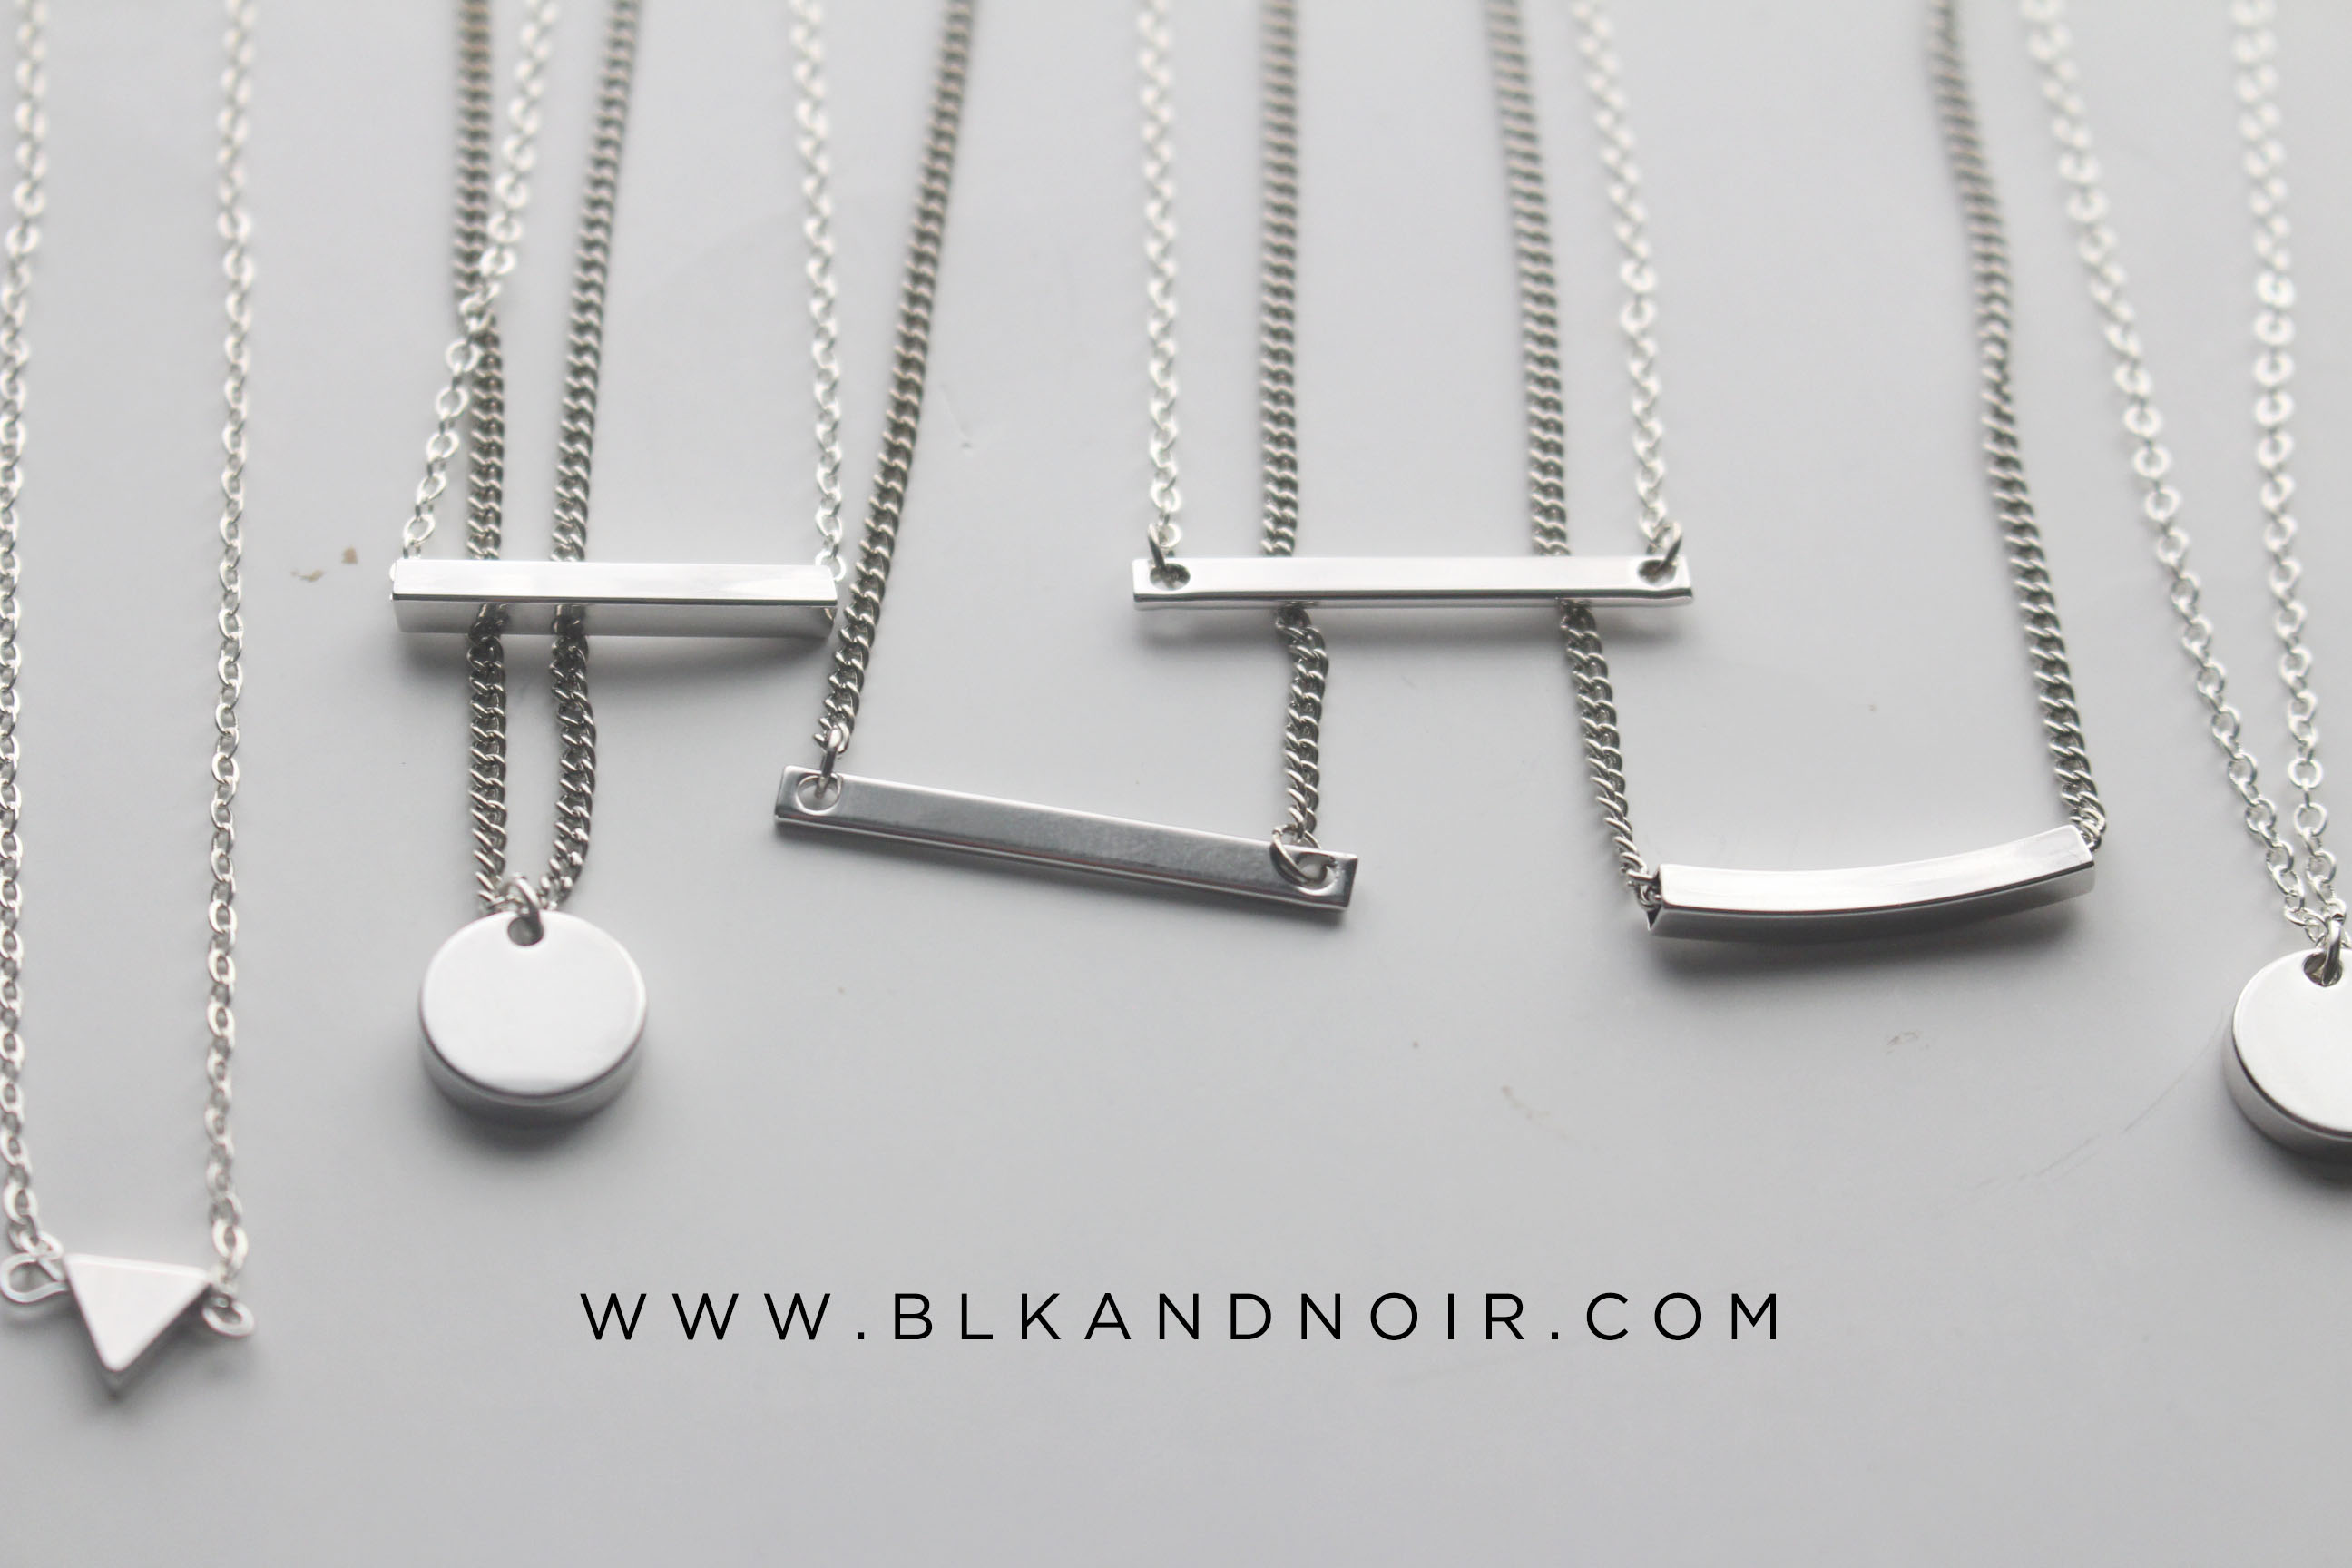 THE MINIMALIST COLLECTION IS COMING BACK SOON